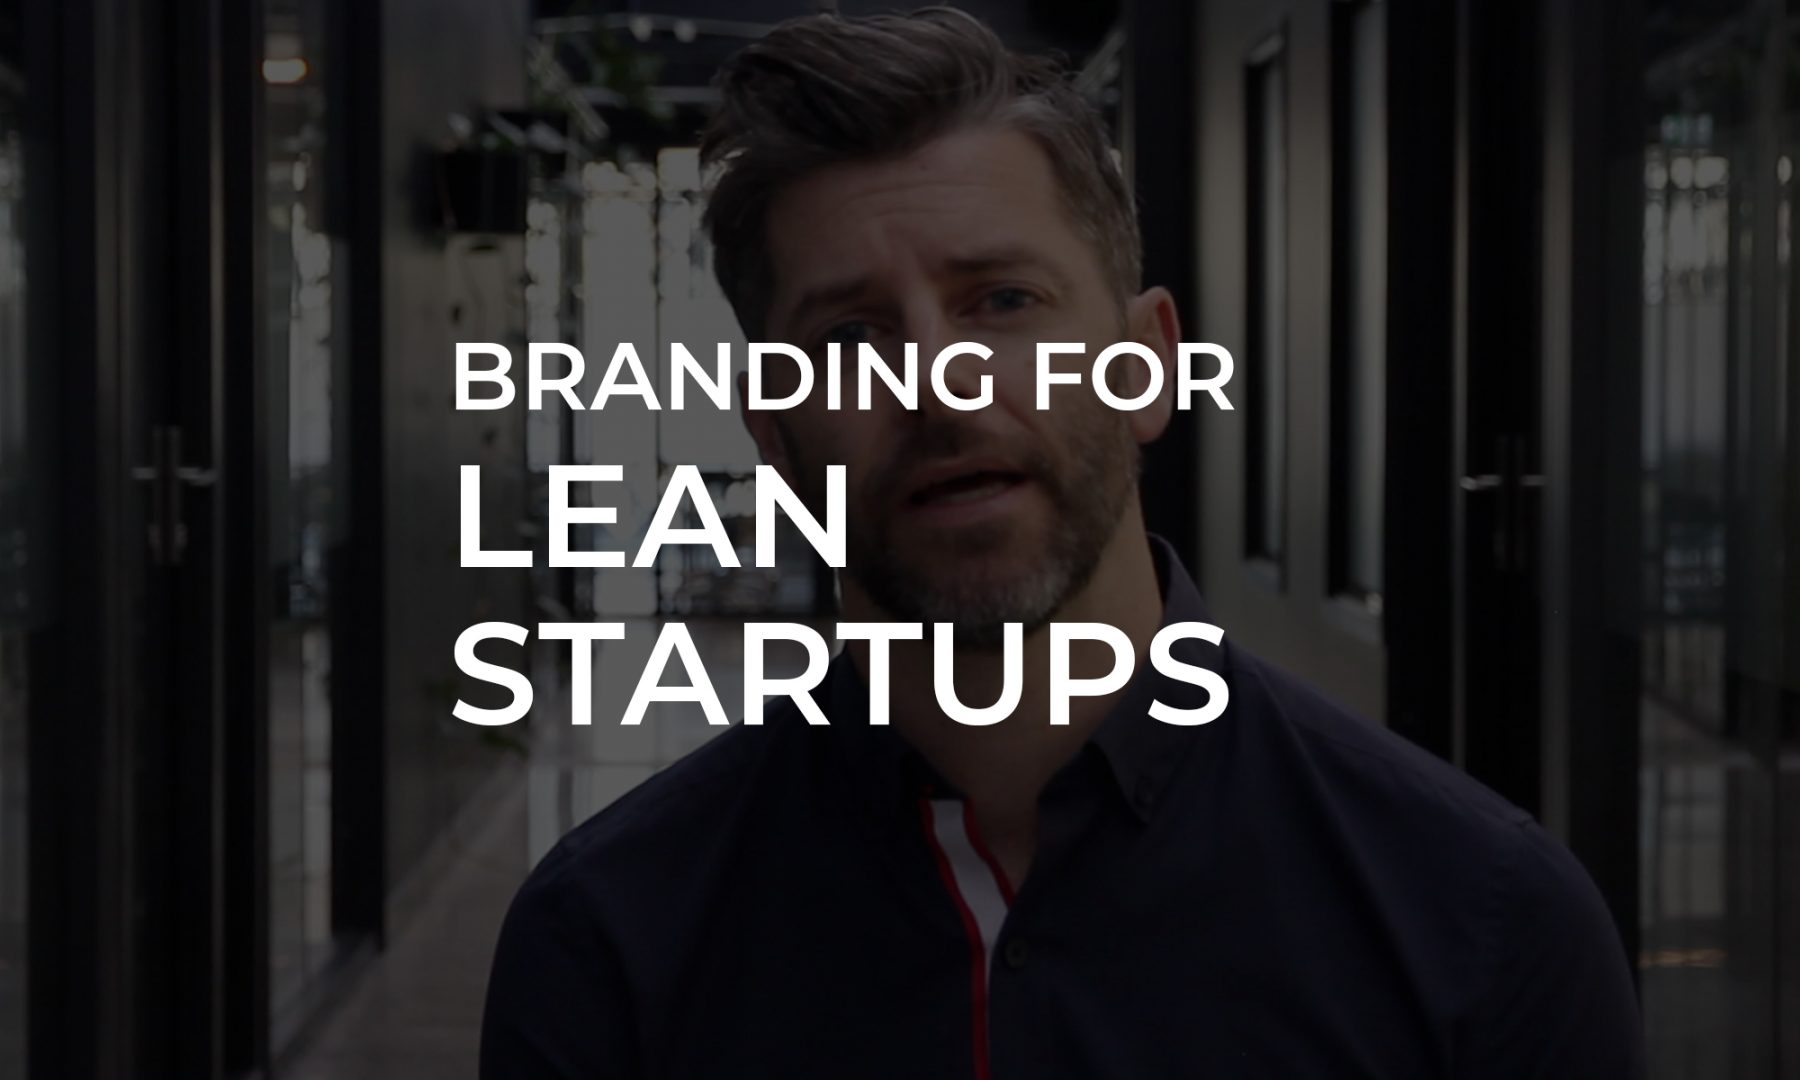 Branding for lean startups